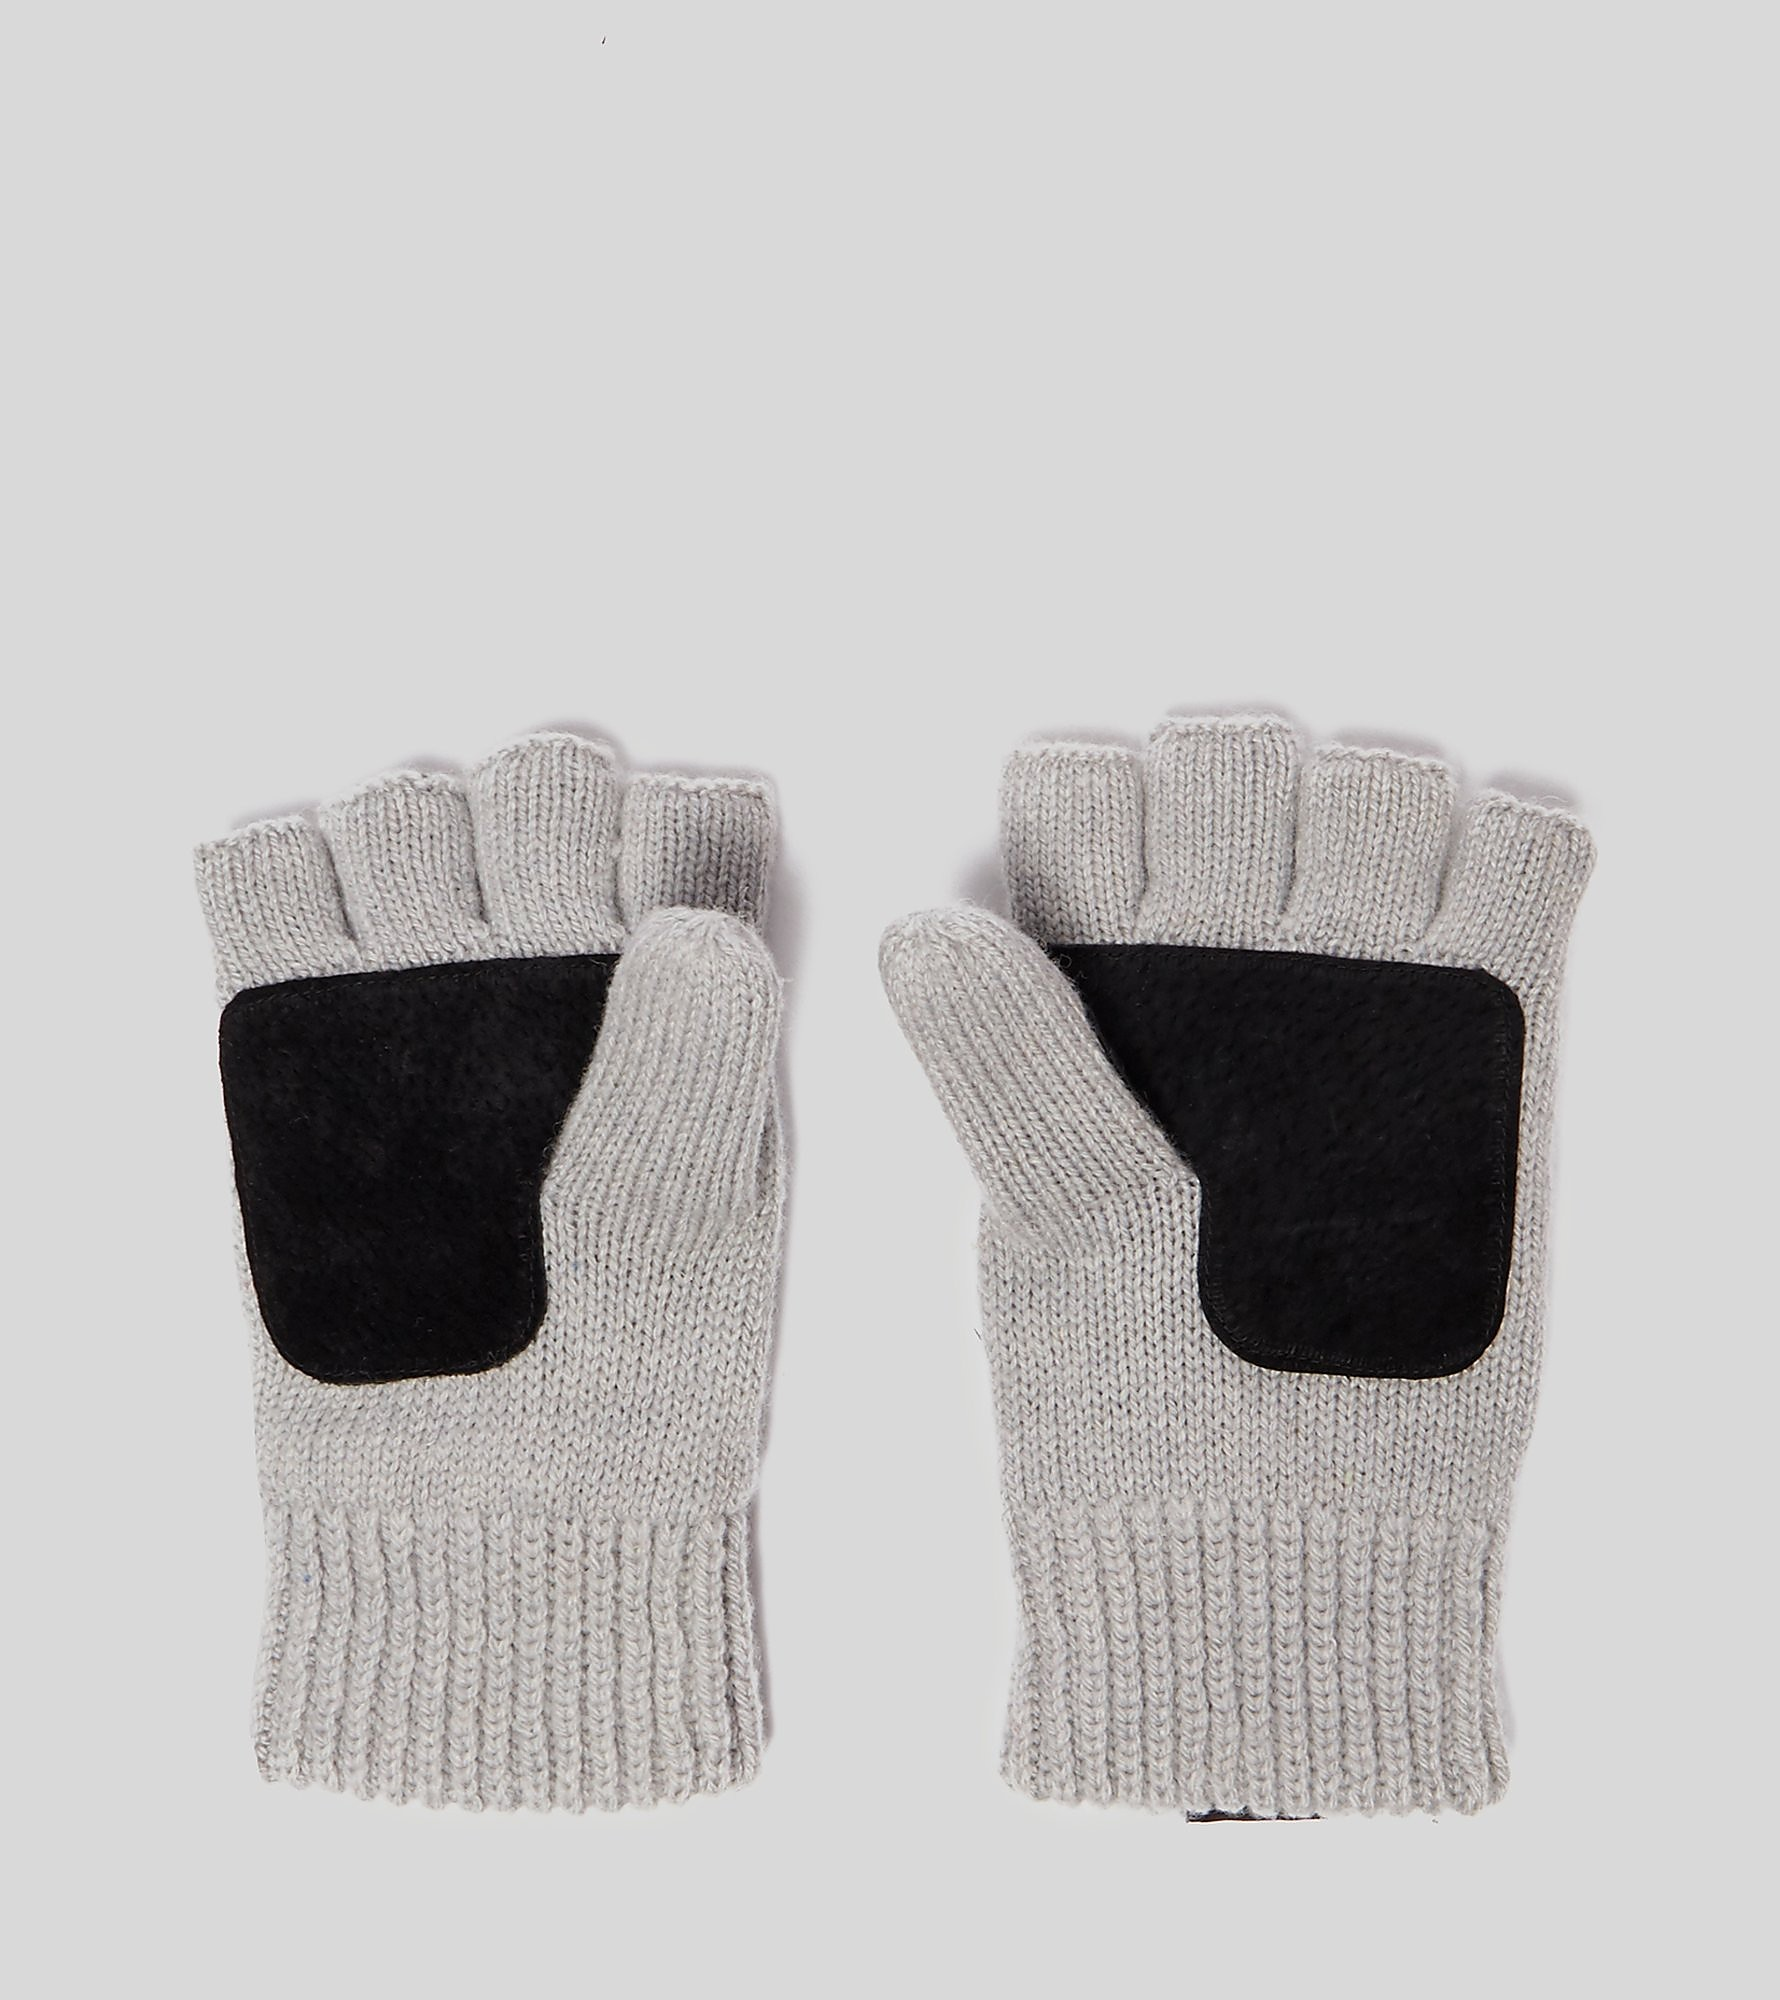 The North Face International Backflip Mitten